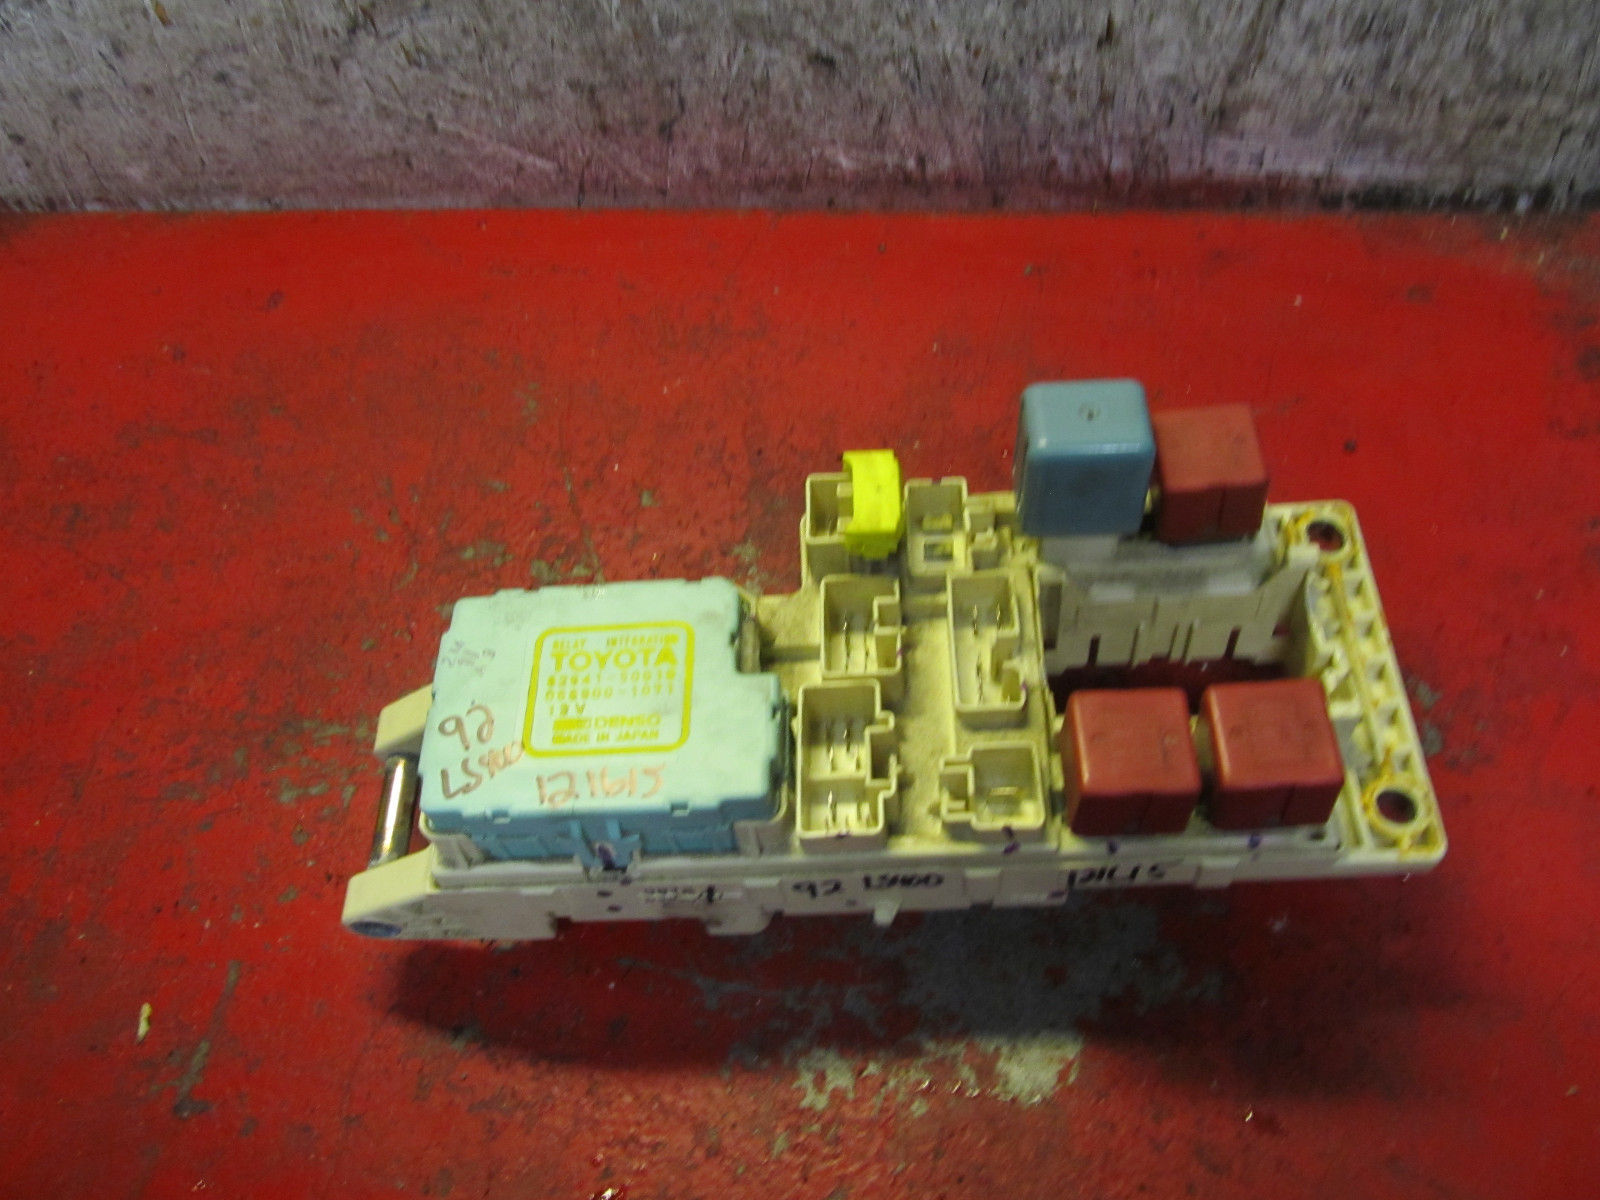 hight resolution of 94 93 90 91 92 lexus ls400 interior fuse box and similar items the interior of